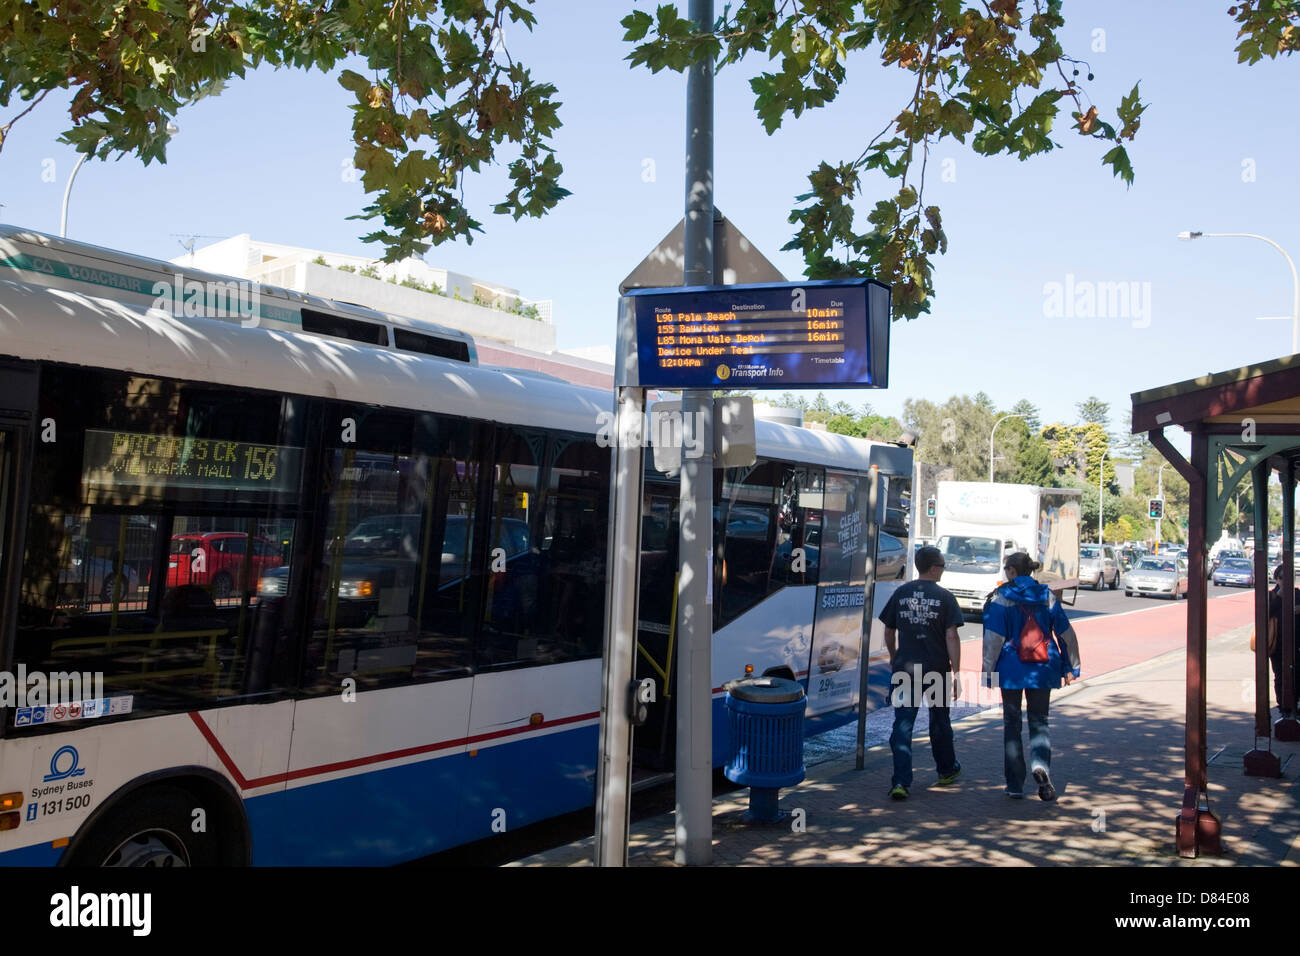 sydney trial of real time bus travel information - Stock Image